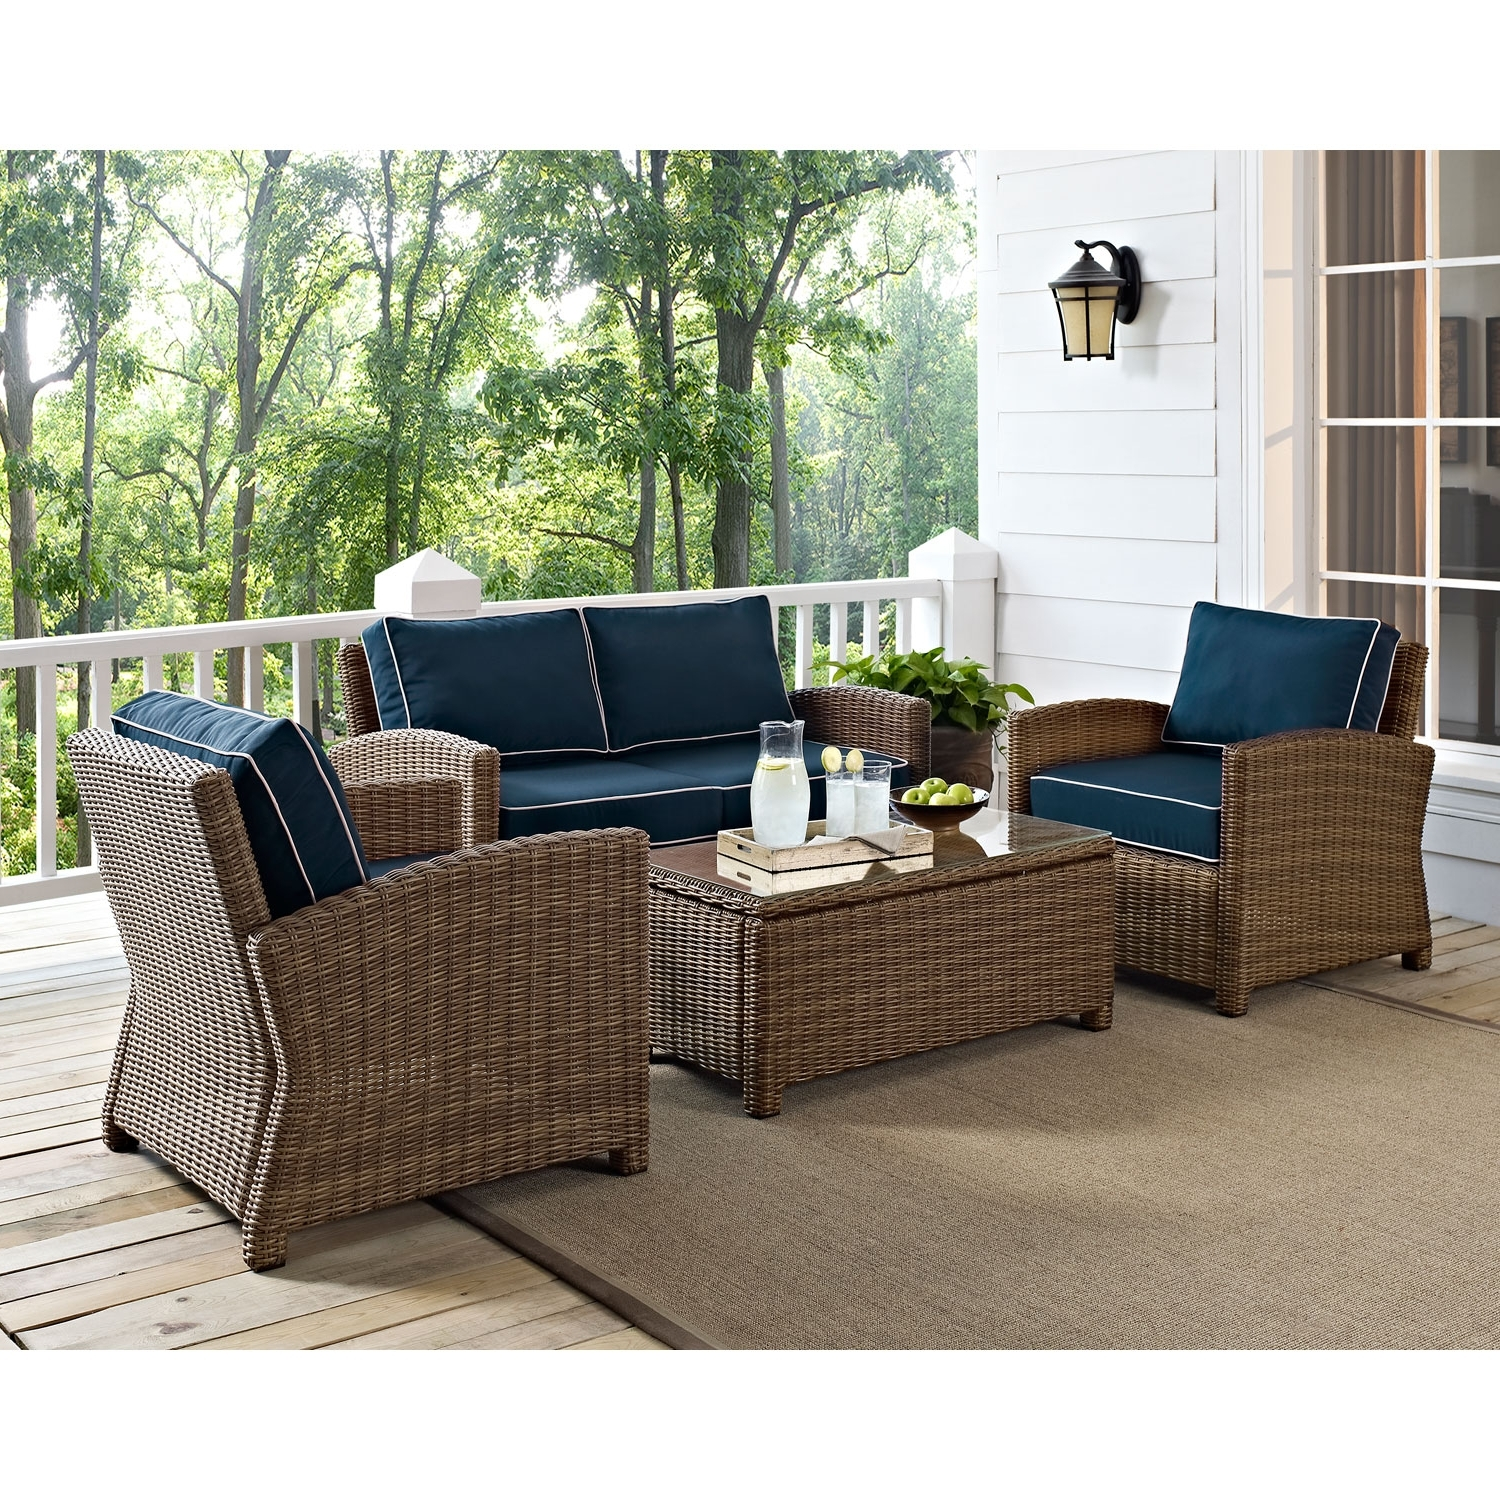 Widely Used Crosley Furniture Bradenton 4 Piece Outdoor Wicker Seating Set With Within Patio Sectional Conversation Sets (View 20 of 20)